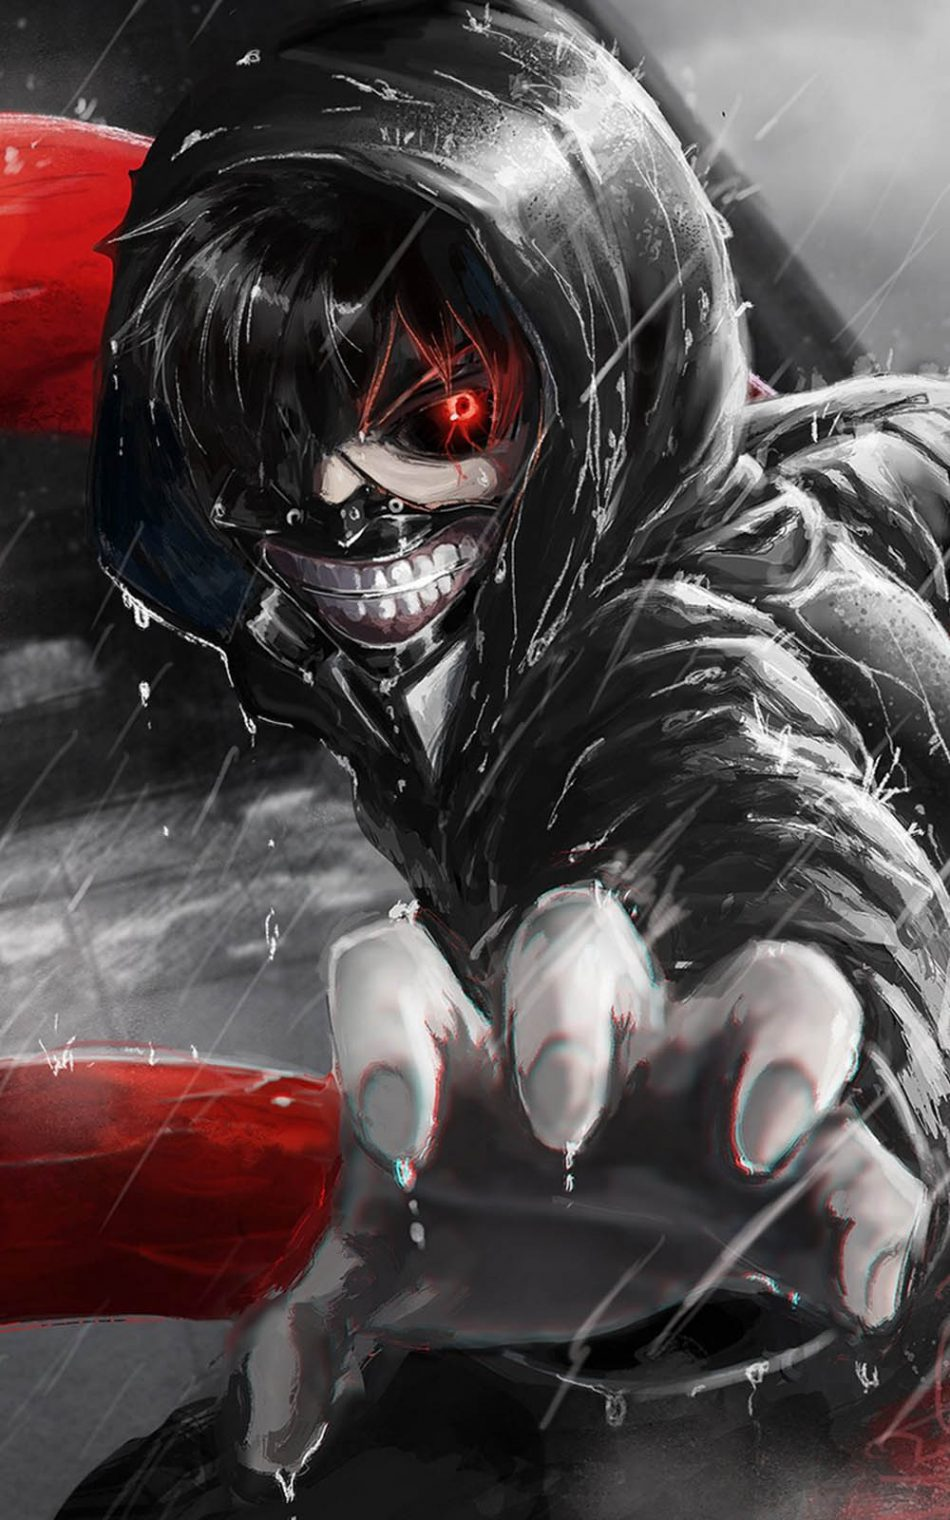 Simple Wallpaper Angry Mobile Hd - Angry-Tokyo-Ghoul-HD-Mobile-Wallpaper-950x1520  Gallery_724762      .jpg